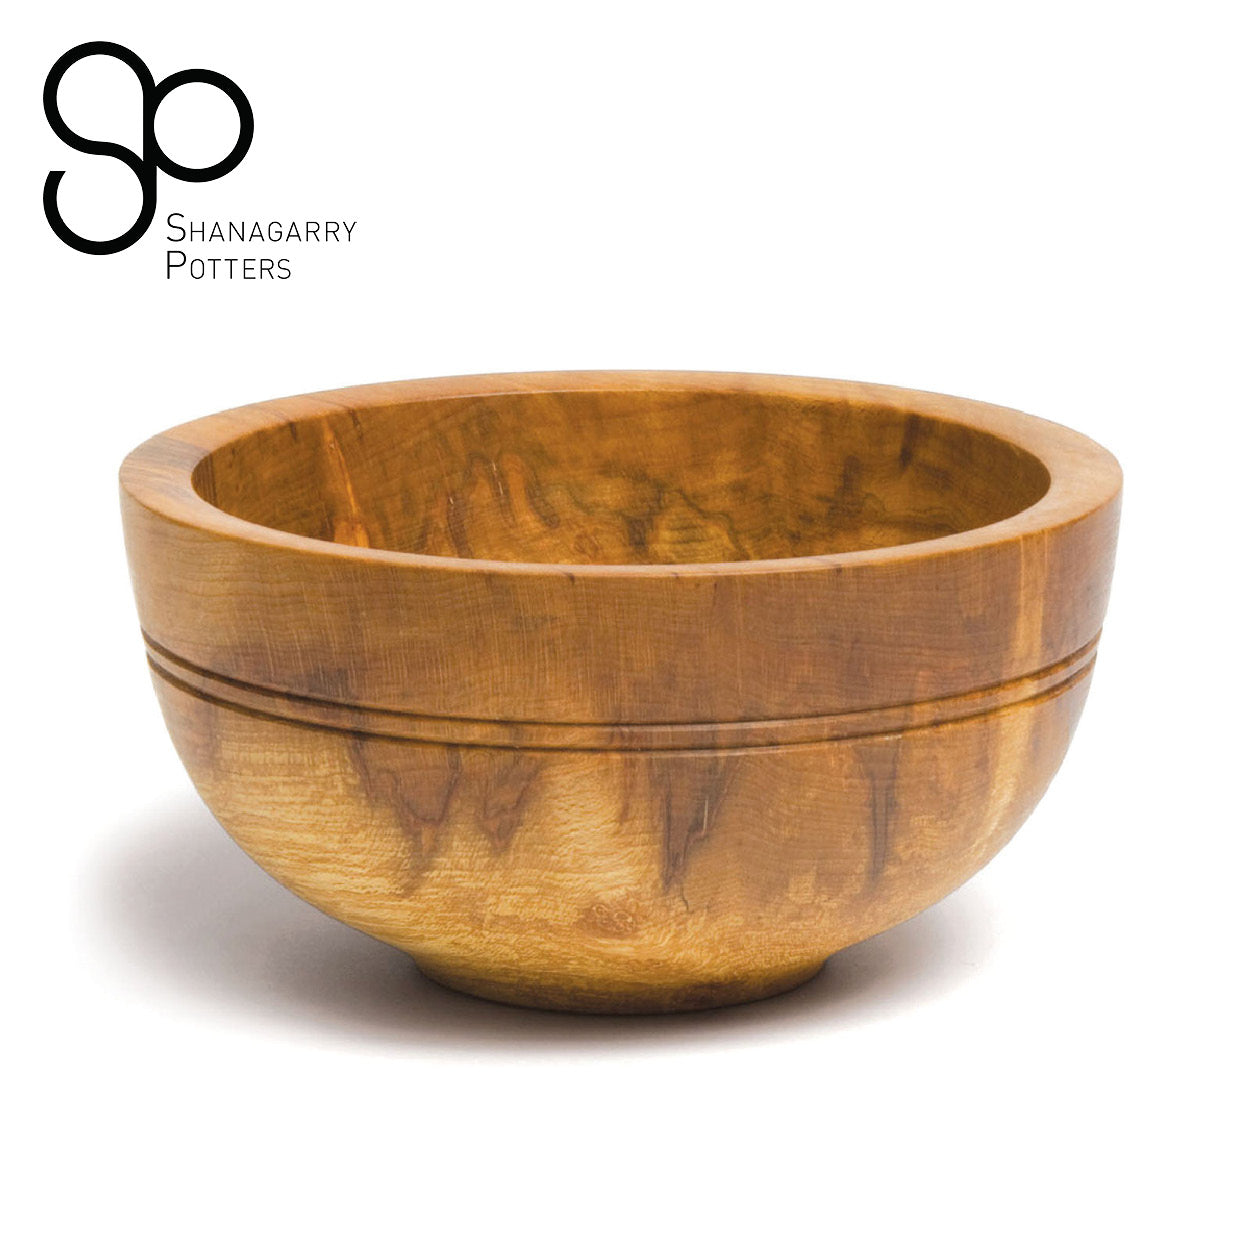 Liam O'Neill - Flared Large Bowl